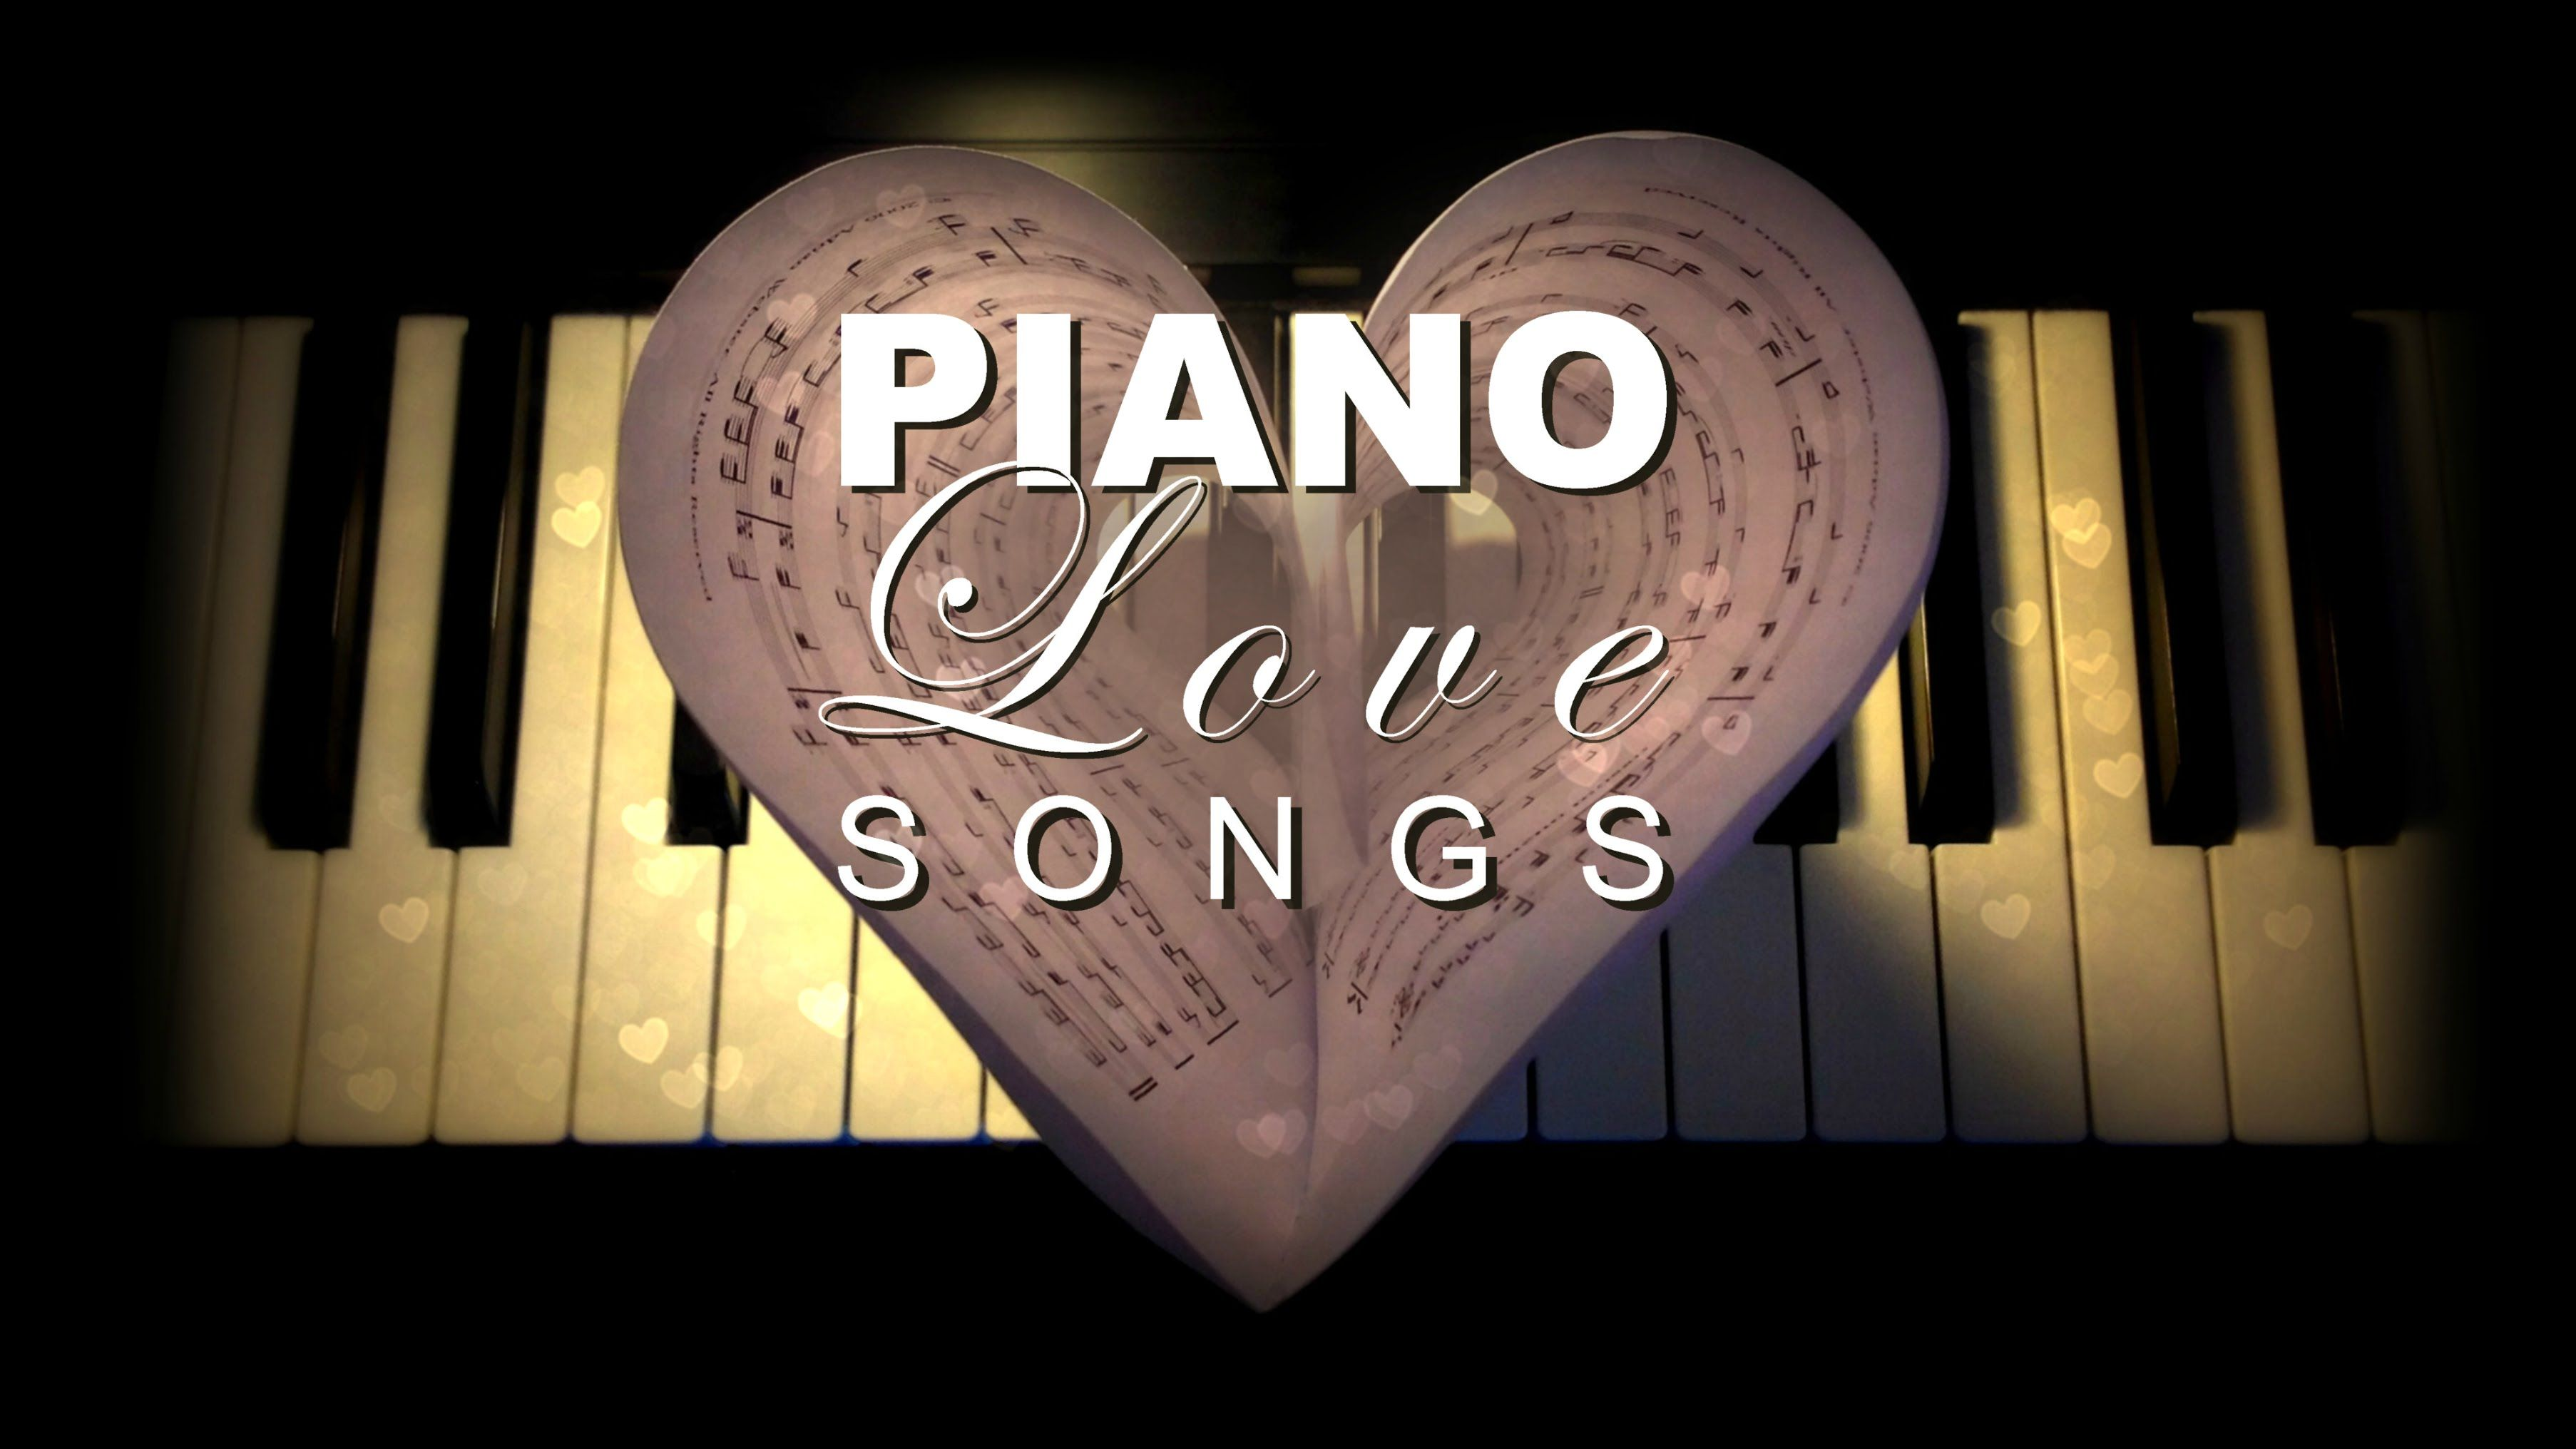 Piano Instrumental Love Songs Best Romantic Music for